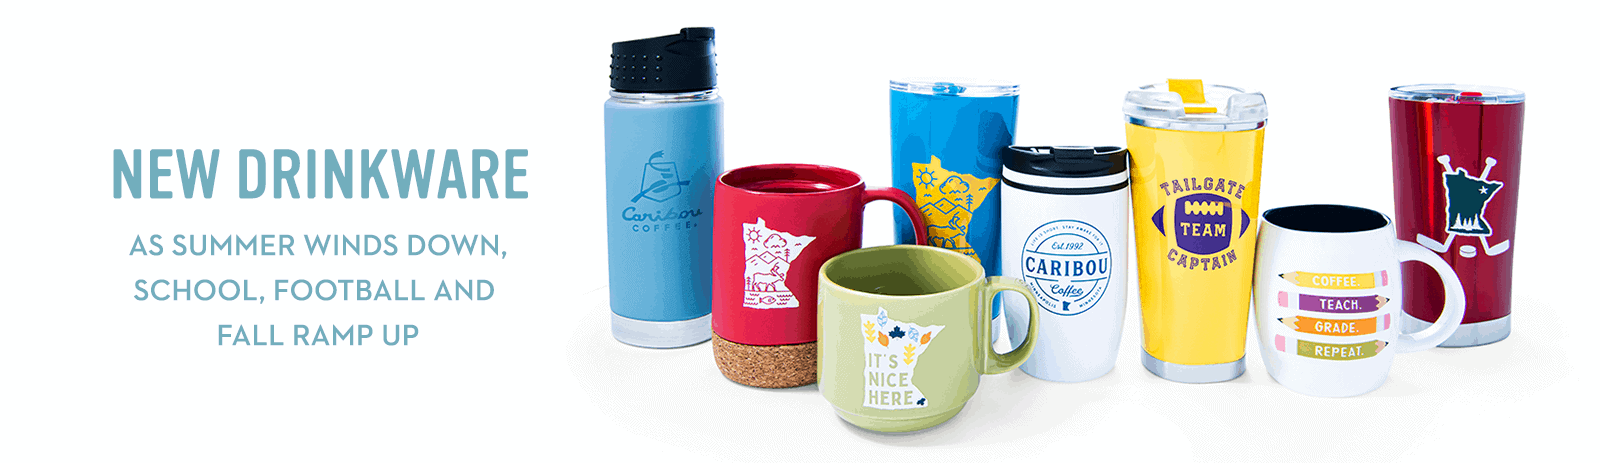 Summer 2 drinkware - desktop